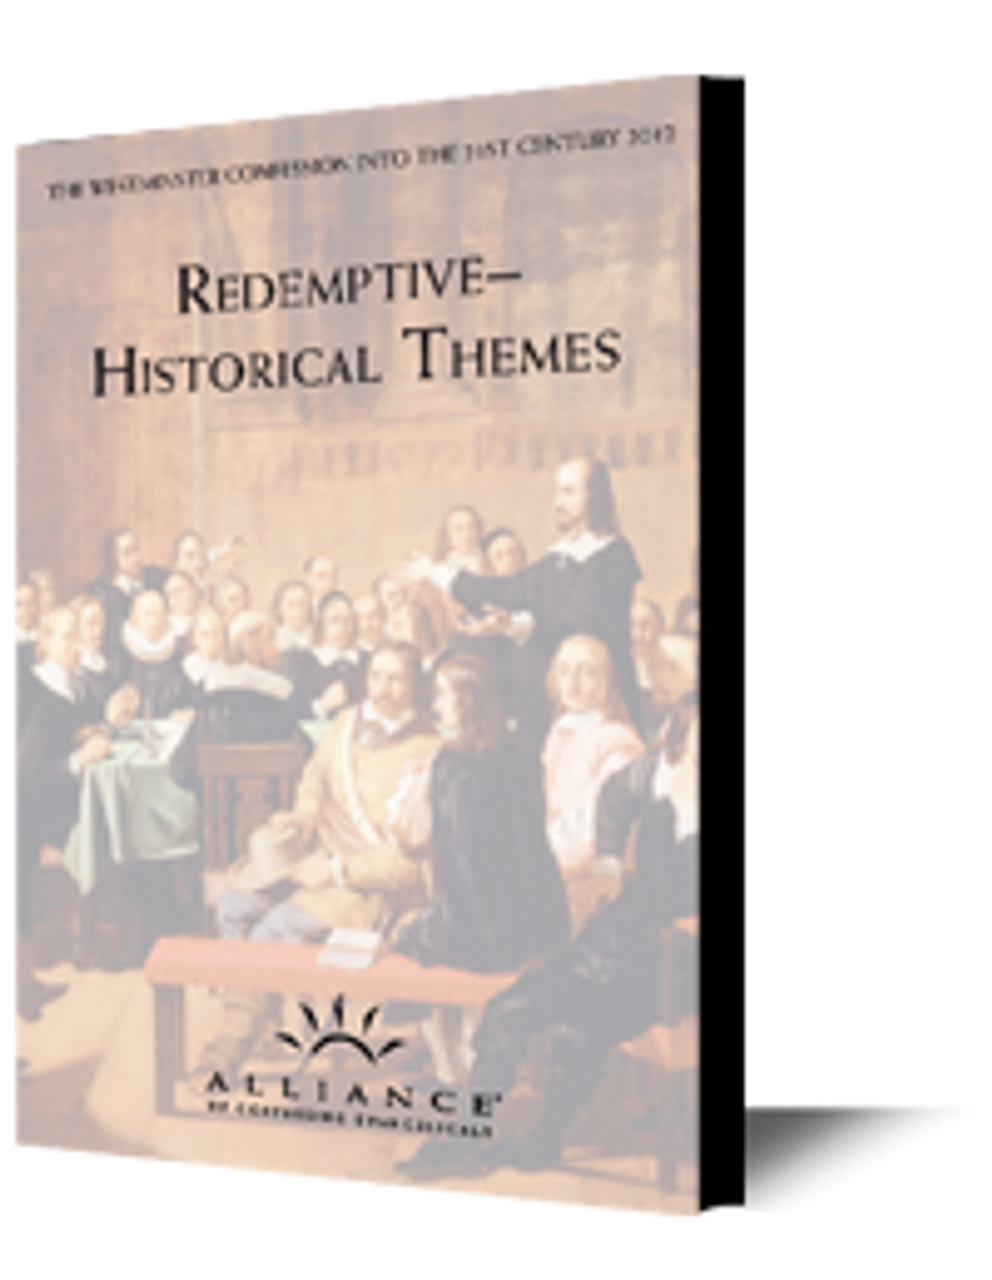 Redemptive-Historical Themes (CD Set)